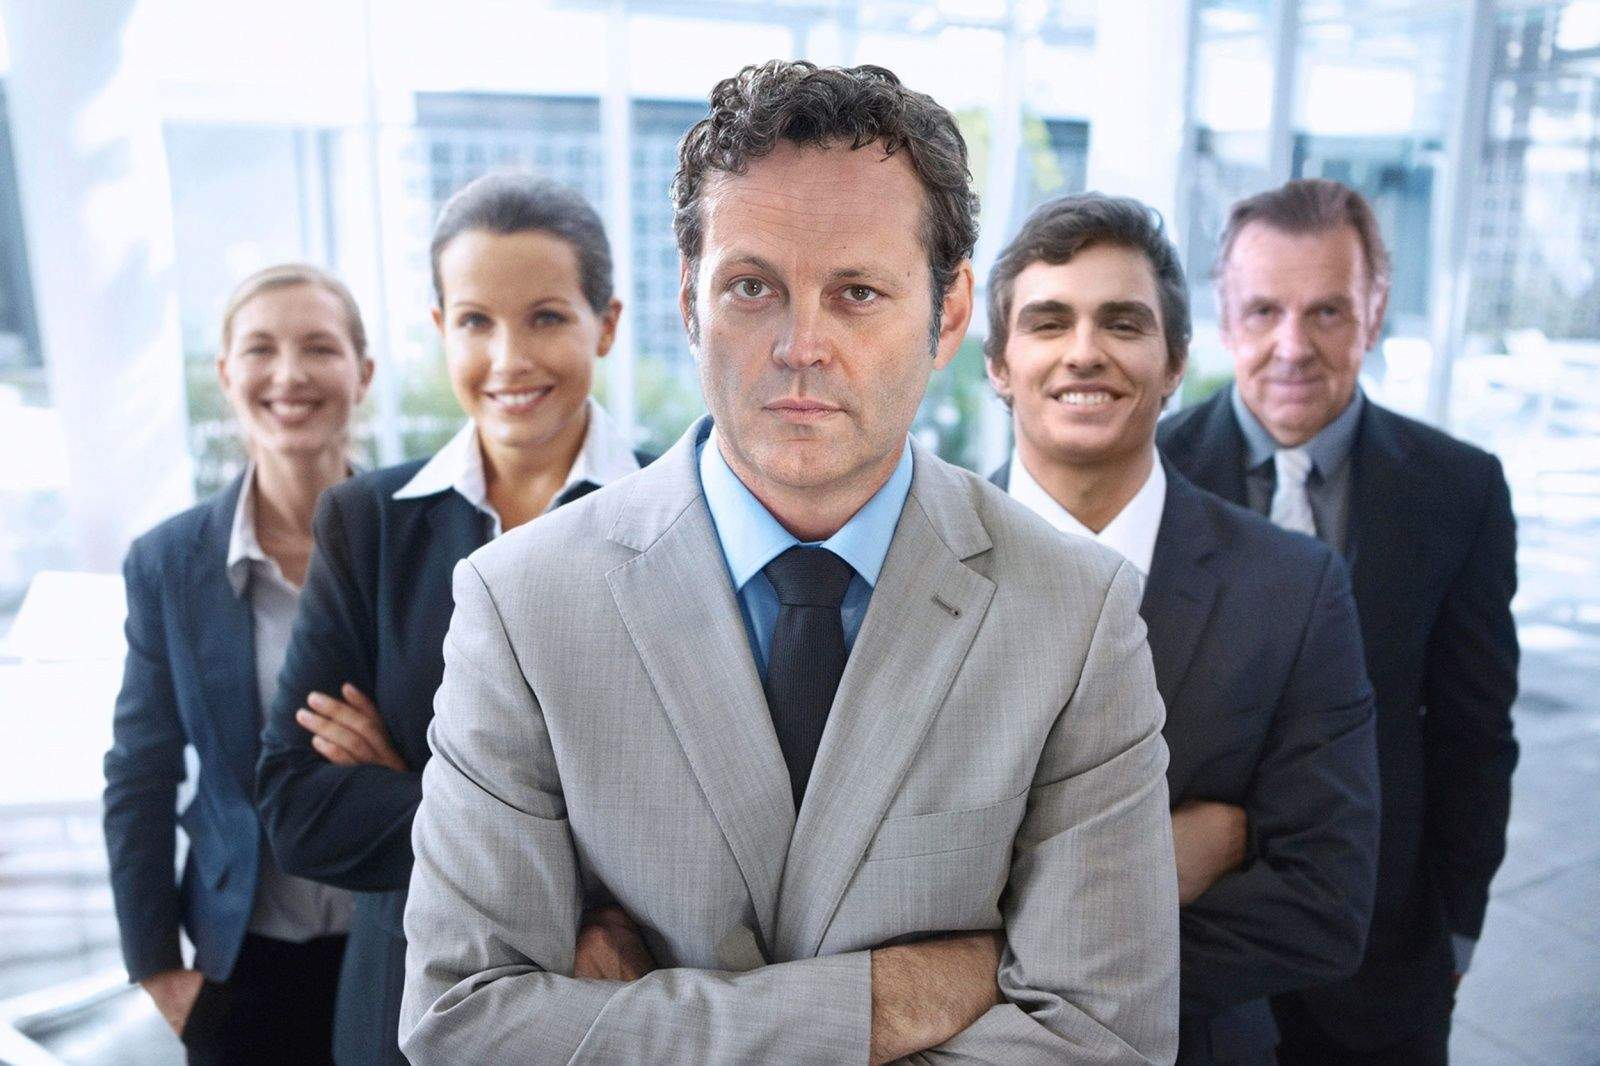 Vince Vaughn and the Apex Select Team. Photo: 20th Century Fox/iStock by Getty Images